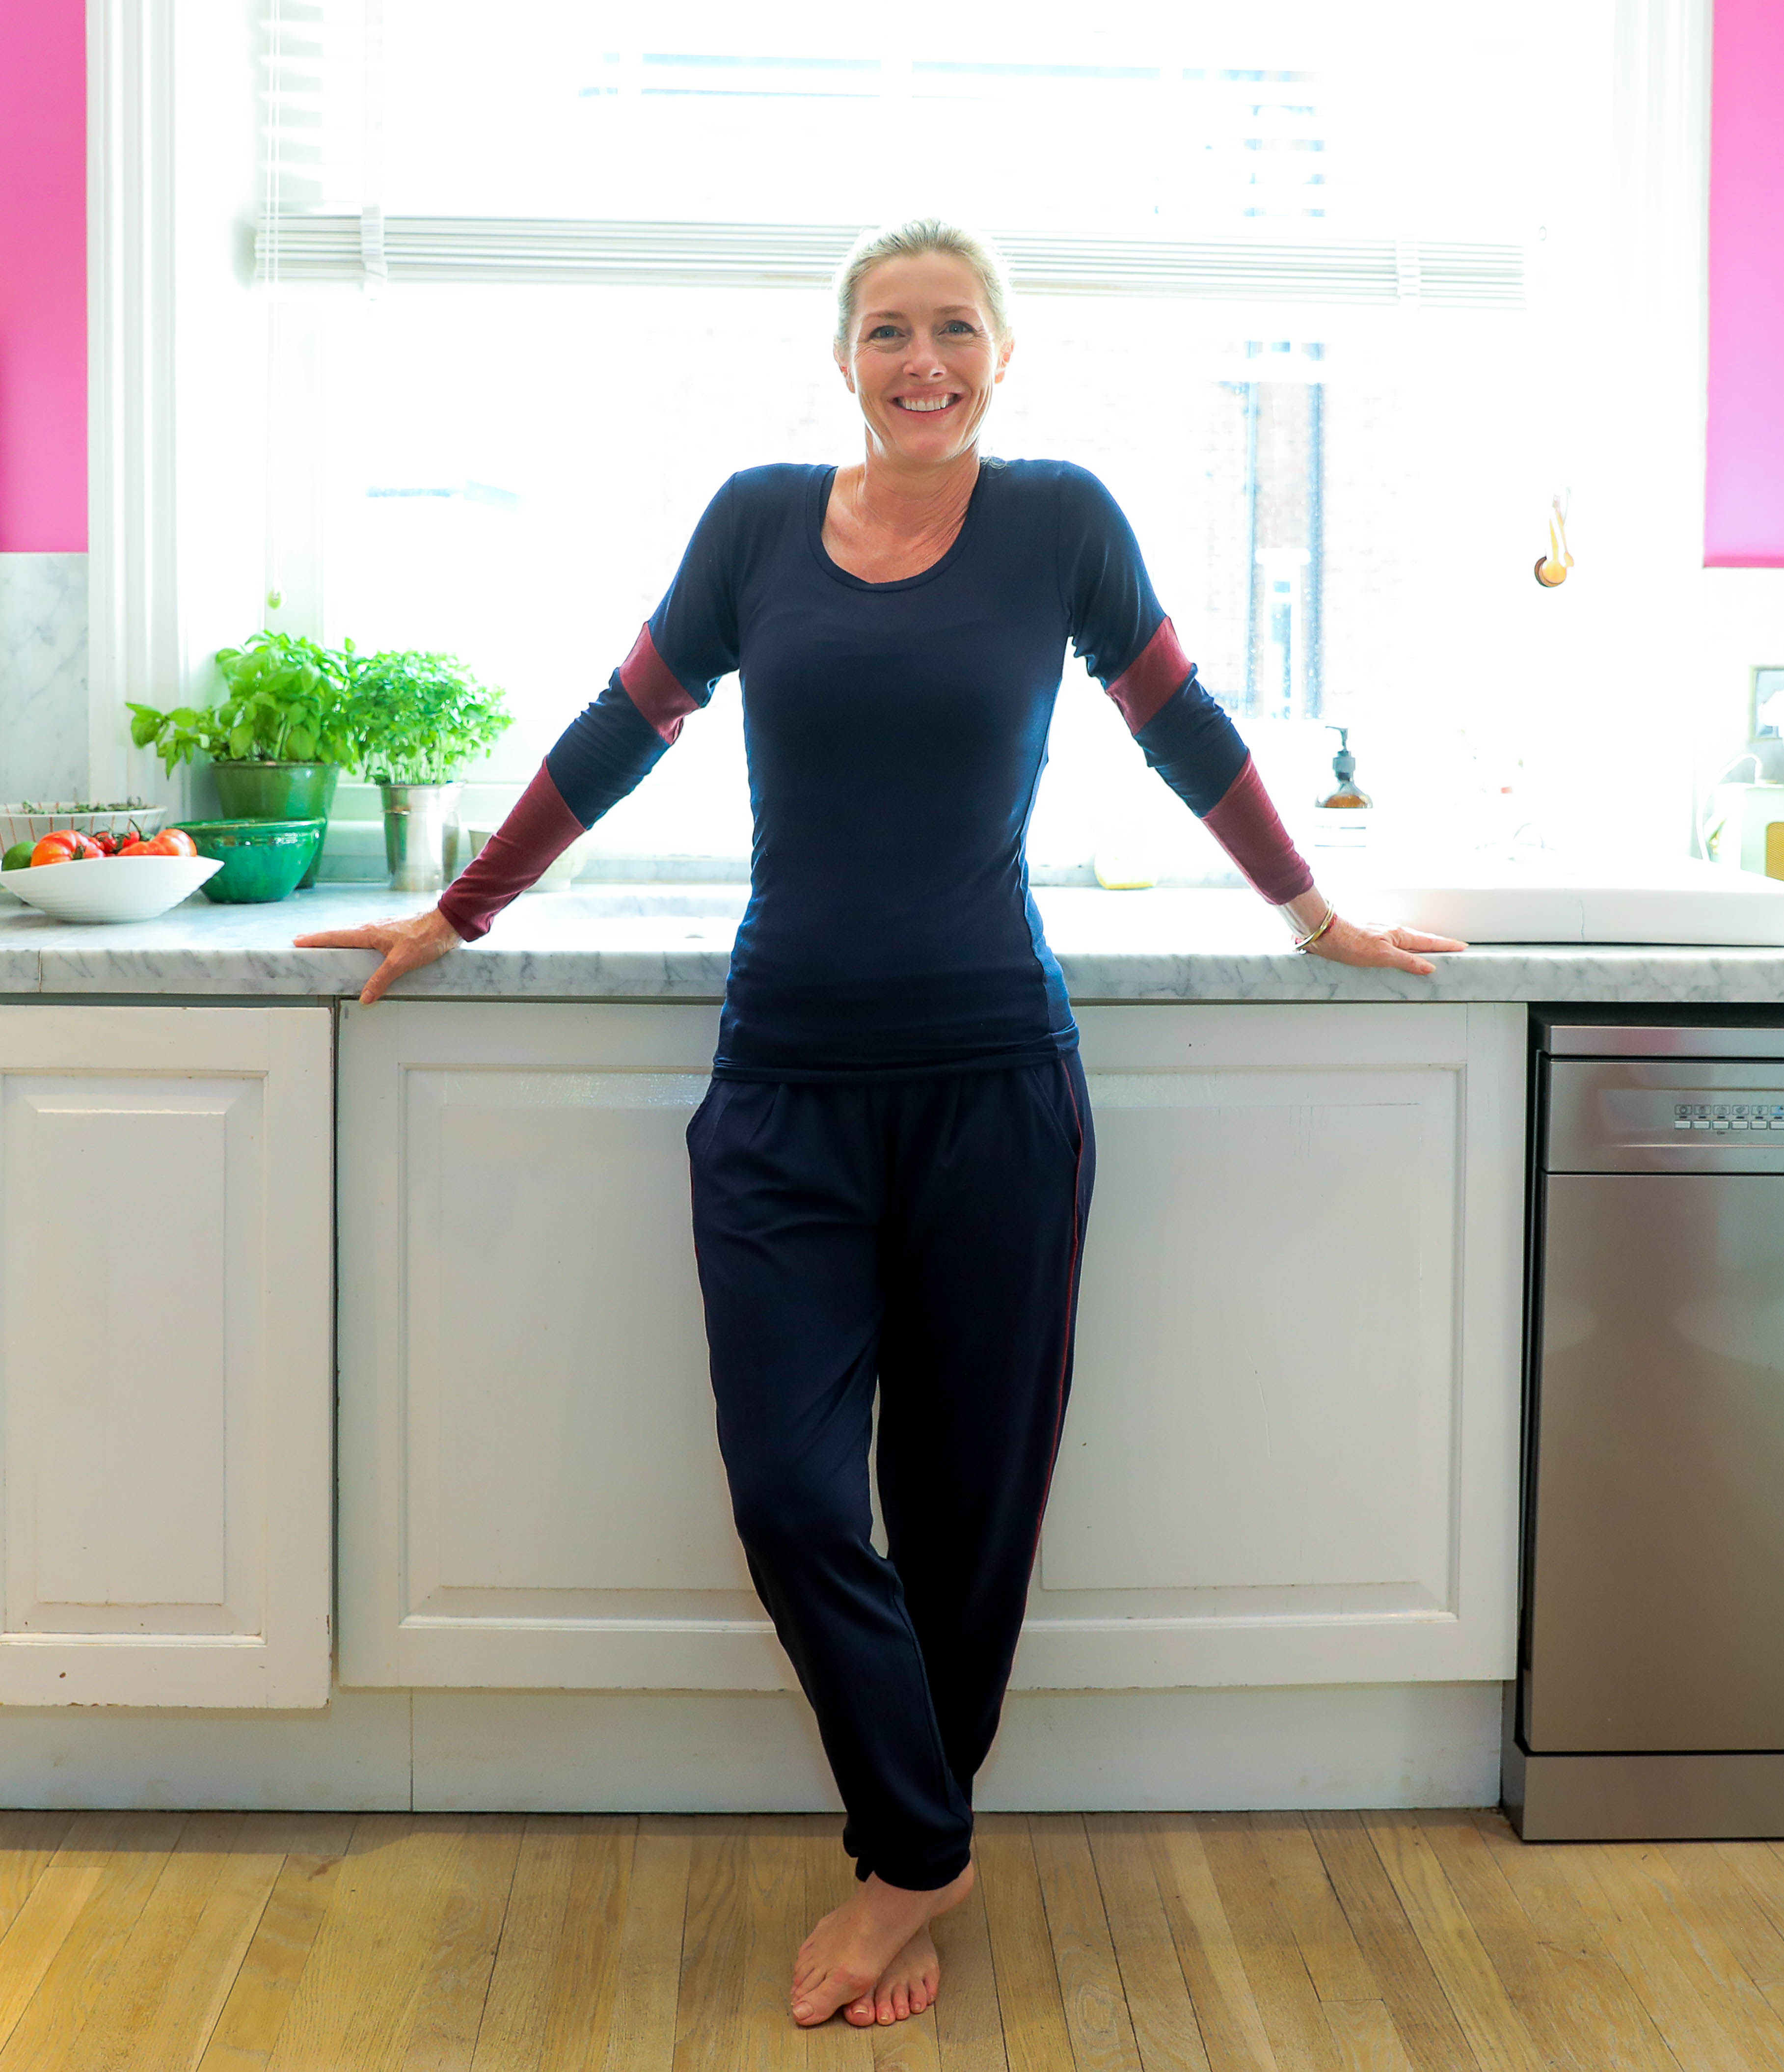 Sophie Conran wears Asquith bamboo Pilates pants and bamboo yoga top in her pink kitchen.